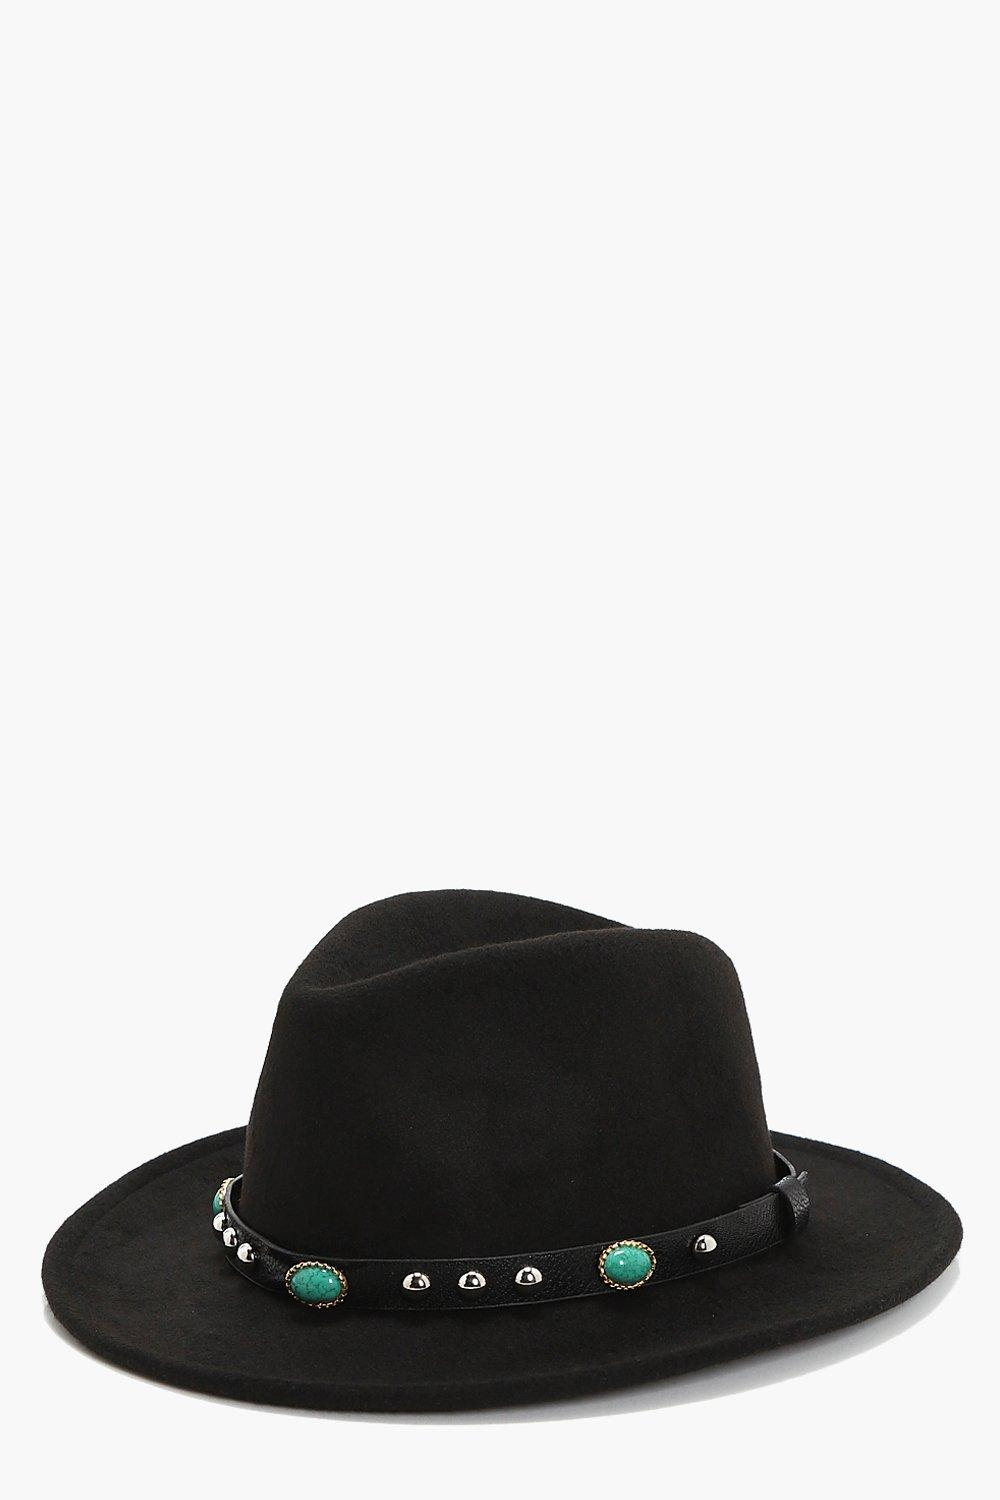 Stone And Stud Fedora Hat - black - Gracie Stone A